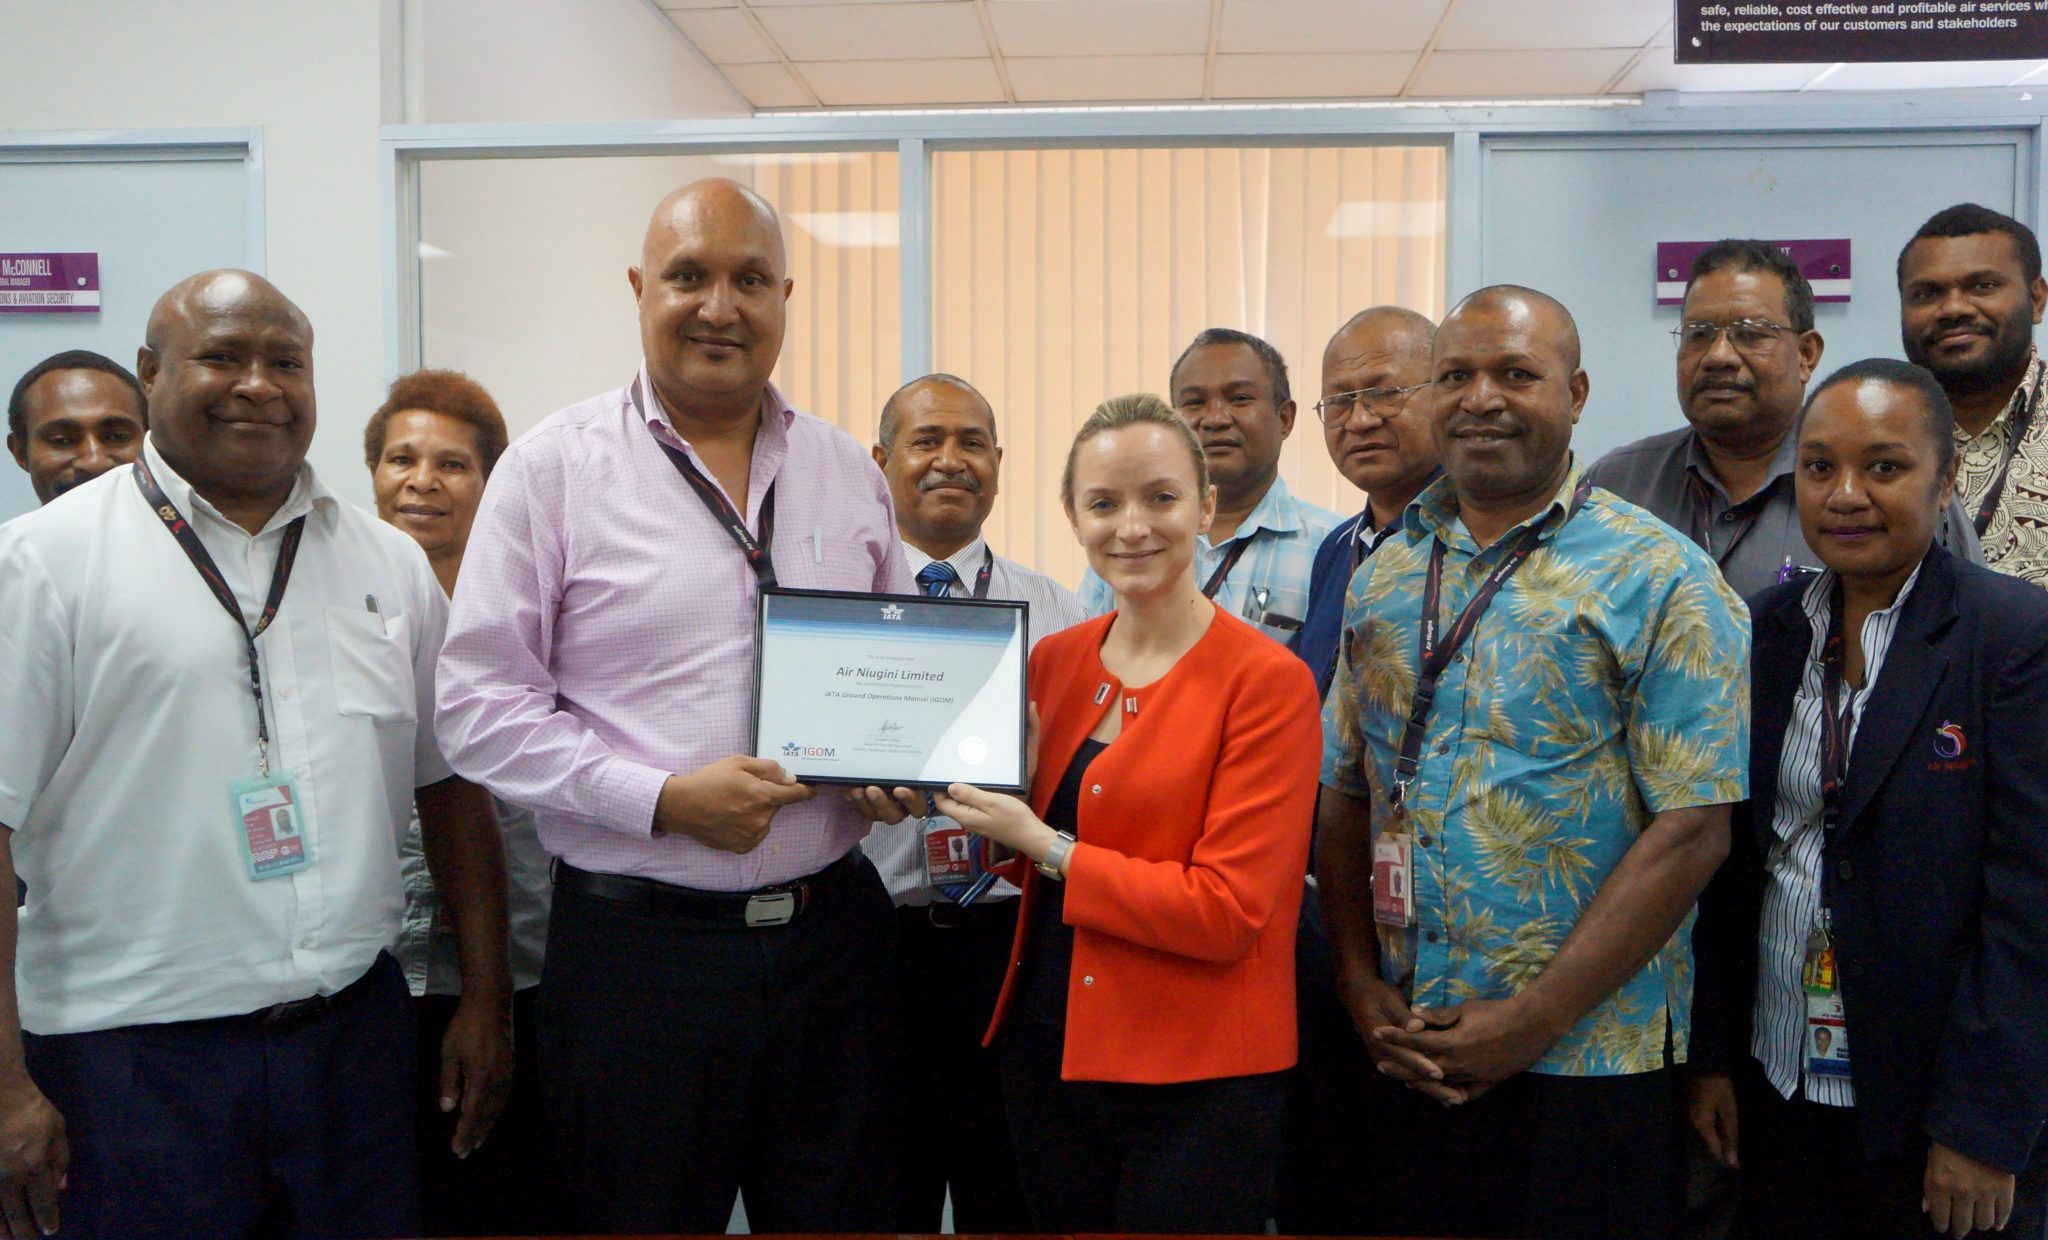 IATA recognises Air Niugini's Ground Operations Safety Standards